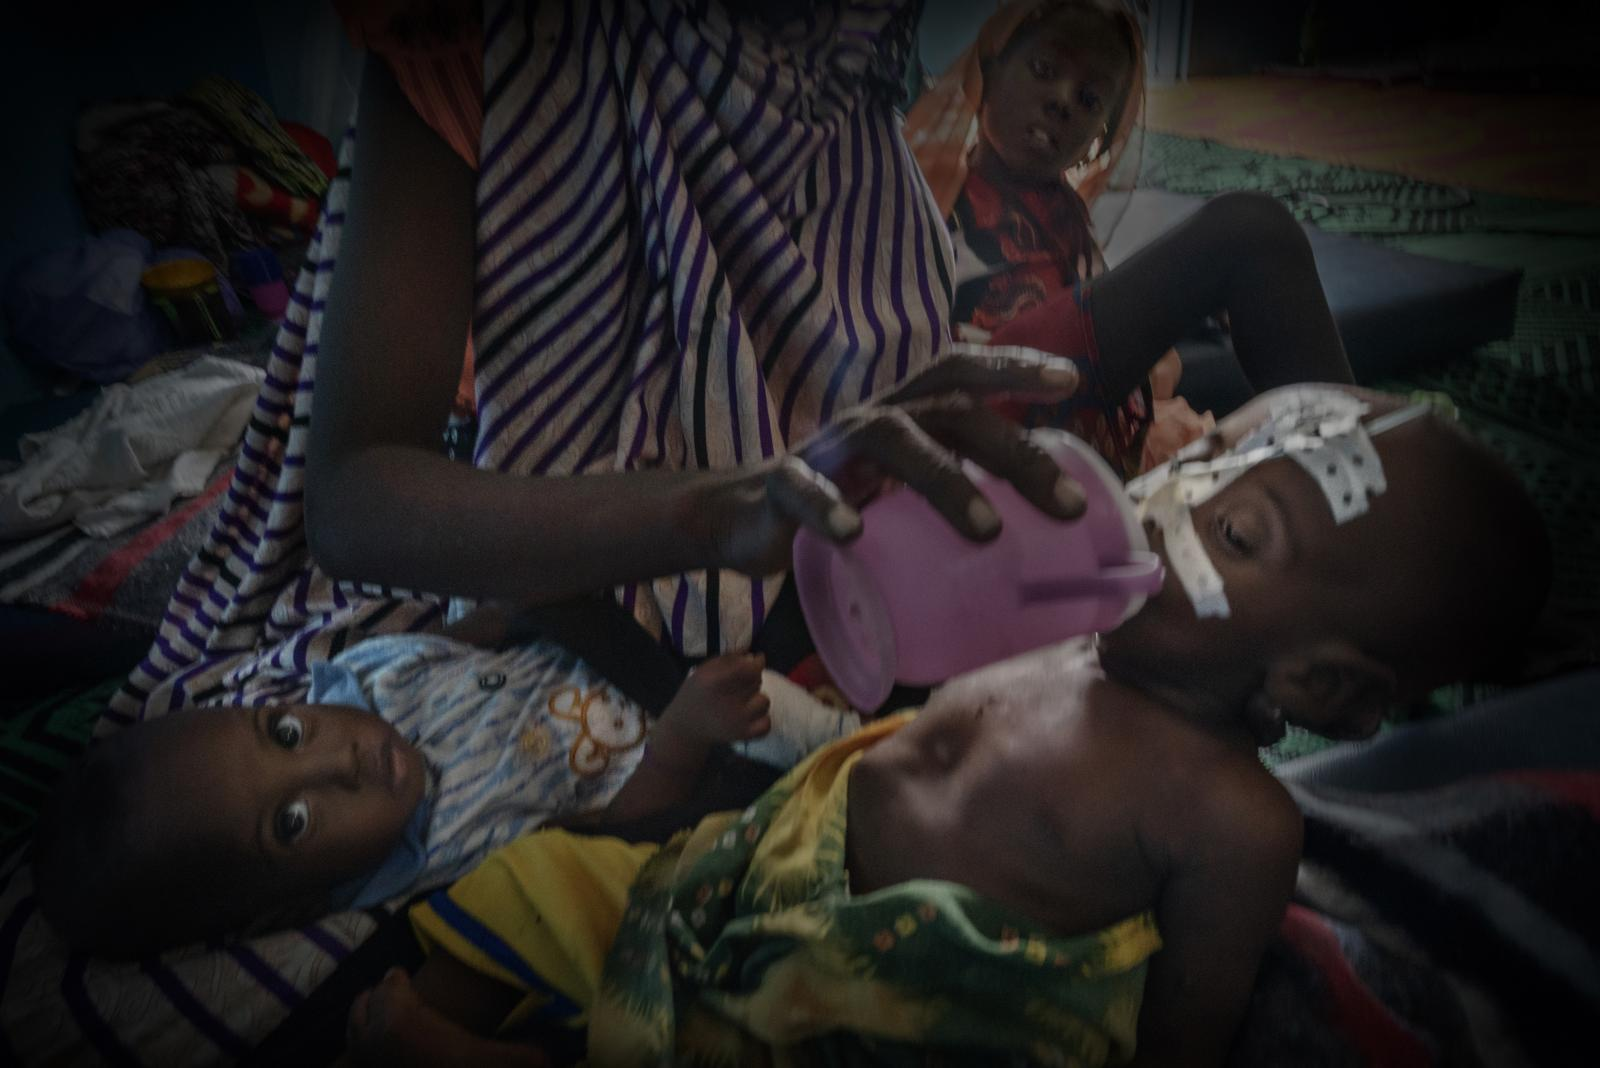 A mother feeds her child suffering from malnutrition in Bokoro hospital, managed by the NGO Doctors Without Borders (Chad).